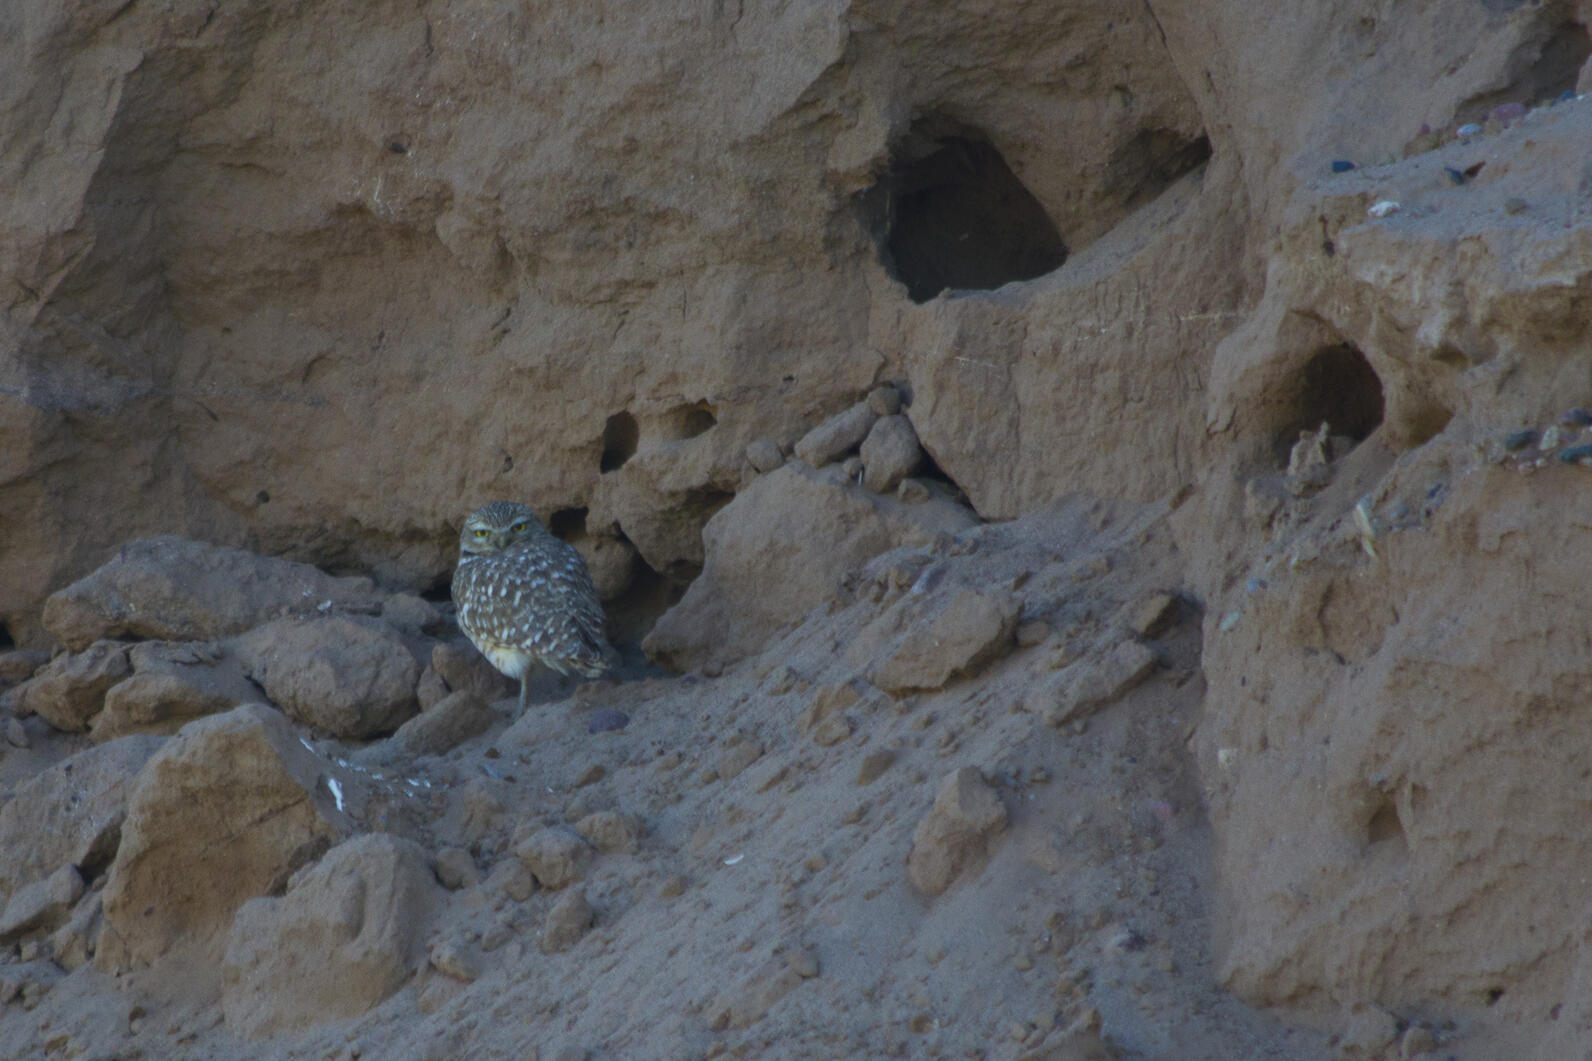 A  Burrowing Owl stands on the eroding edge of a mud cliff. The burrows are visibly unstable and deterioriting.